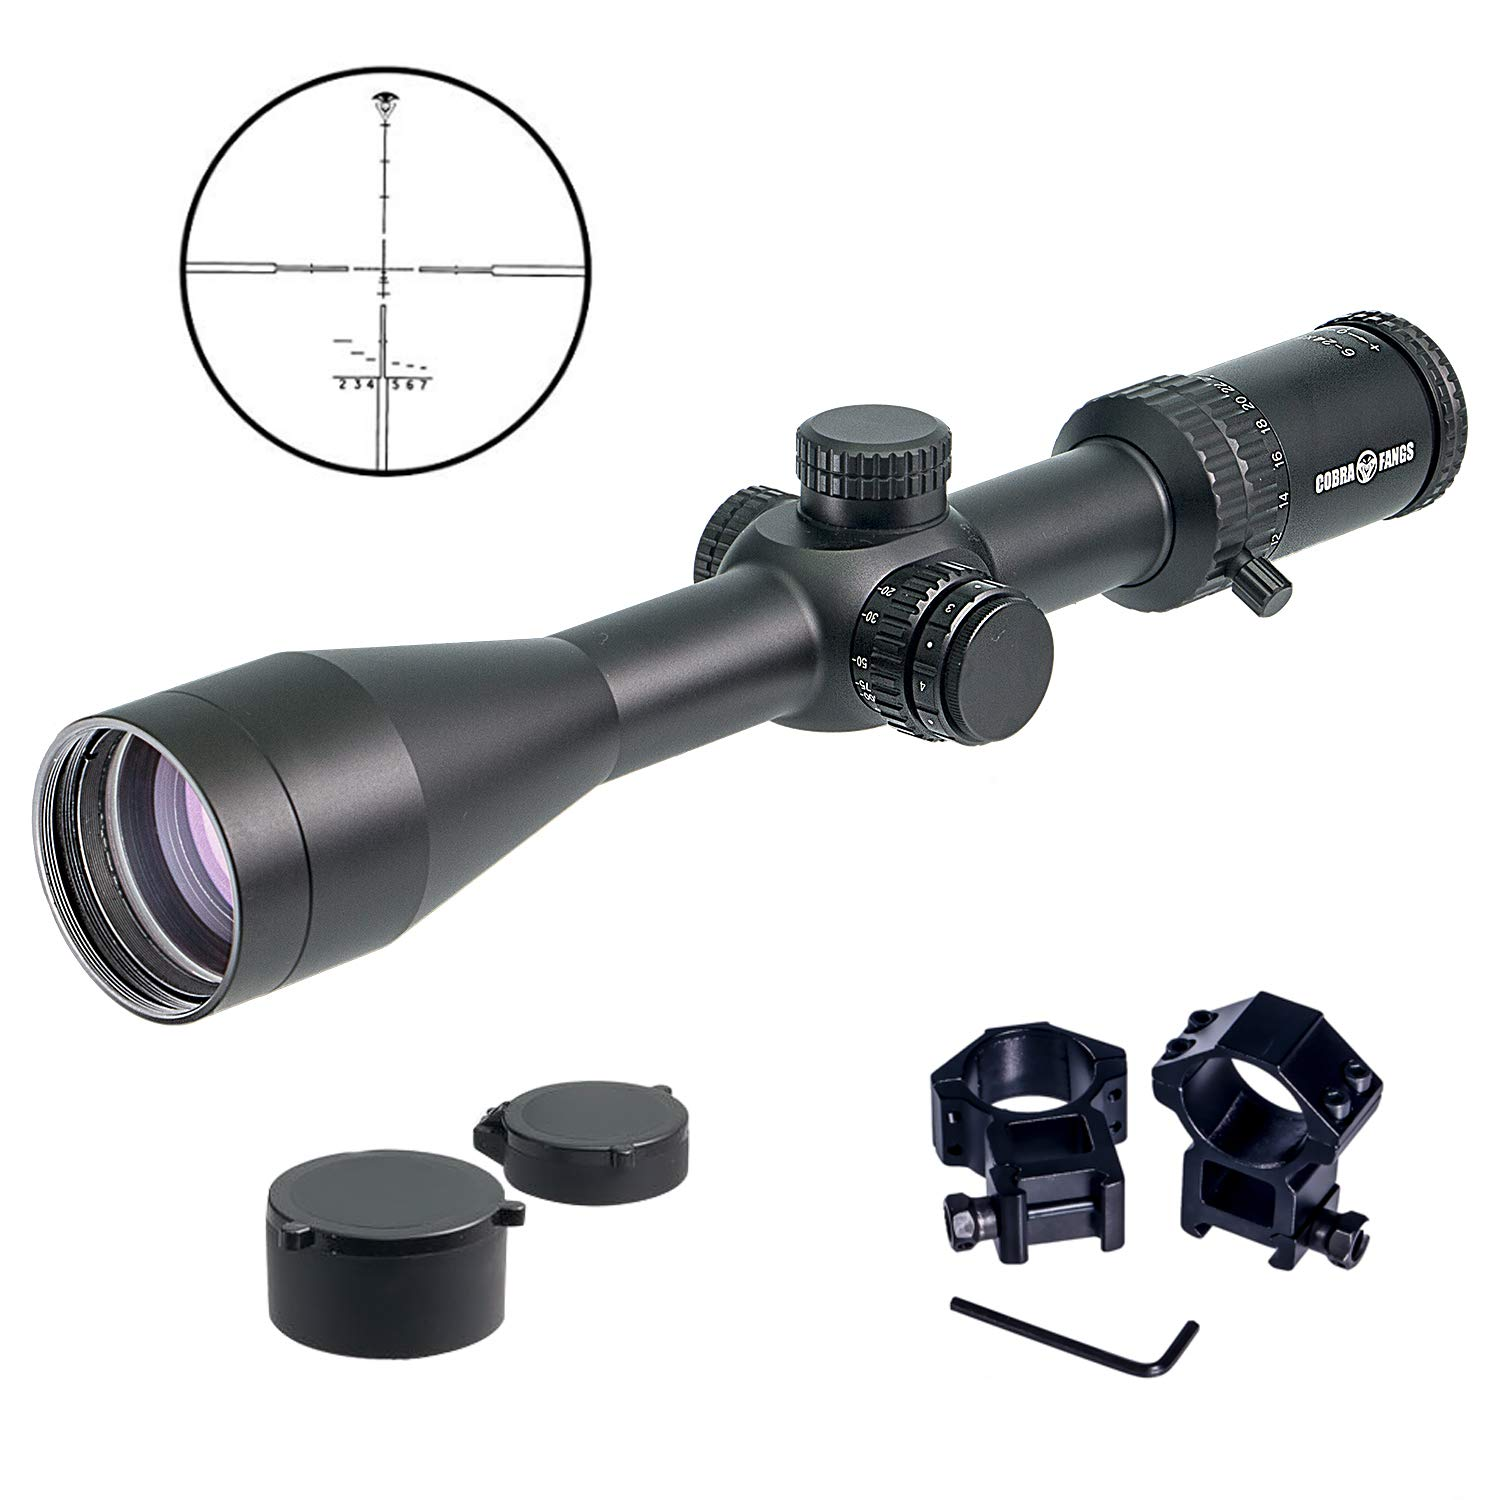 COBRA FANGS 6-24X50mm FFP Rifle Scope for Outdoor Hunting, FFP Tactical AO Optics RifleScope Red Green Illuminated 1 4 MOA Mil-dot Crosshair Scope with Covers Free Mounts